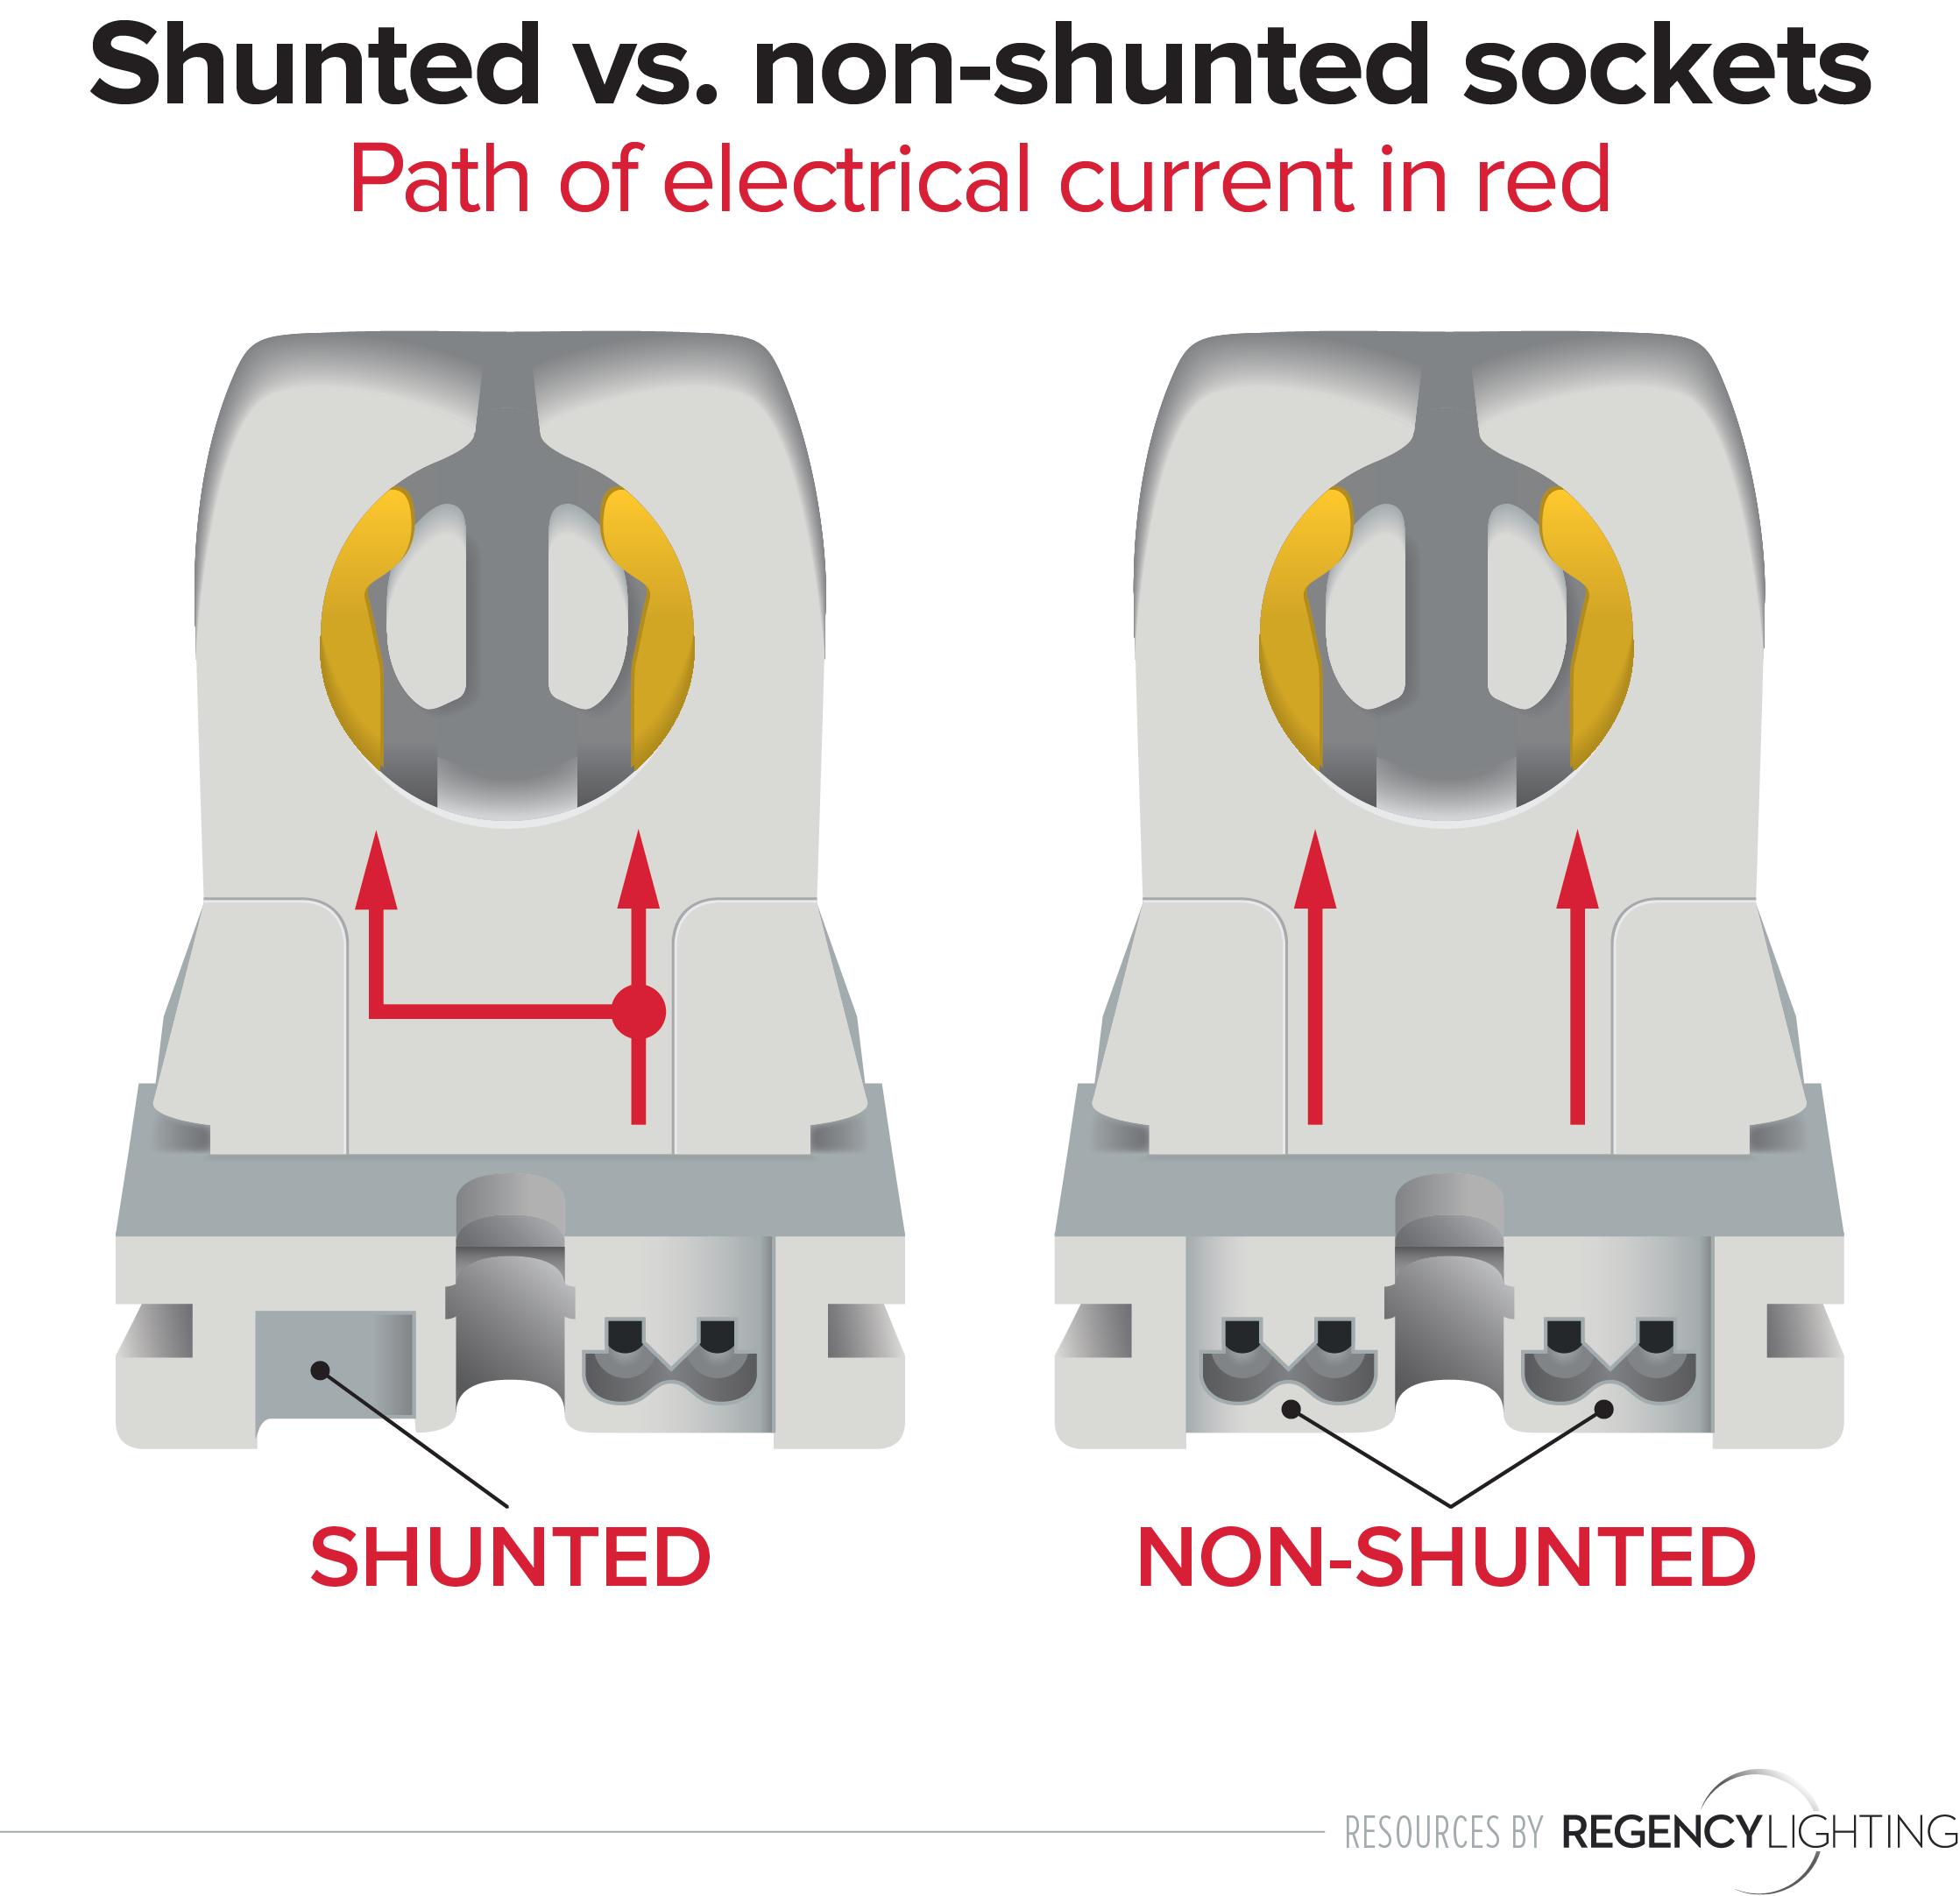 Unshunted Wiring Diagram Fluorescent Lamp Circuit And 4 Bulb Ballast Shunted Vs Non Sockets How To Tell What You Need Rh Insights Regencylighting Com Double Lights Ge T12